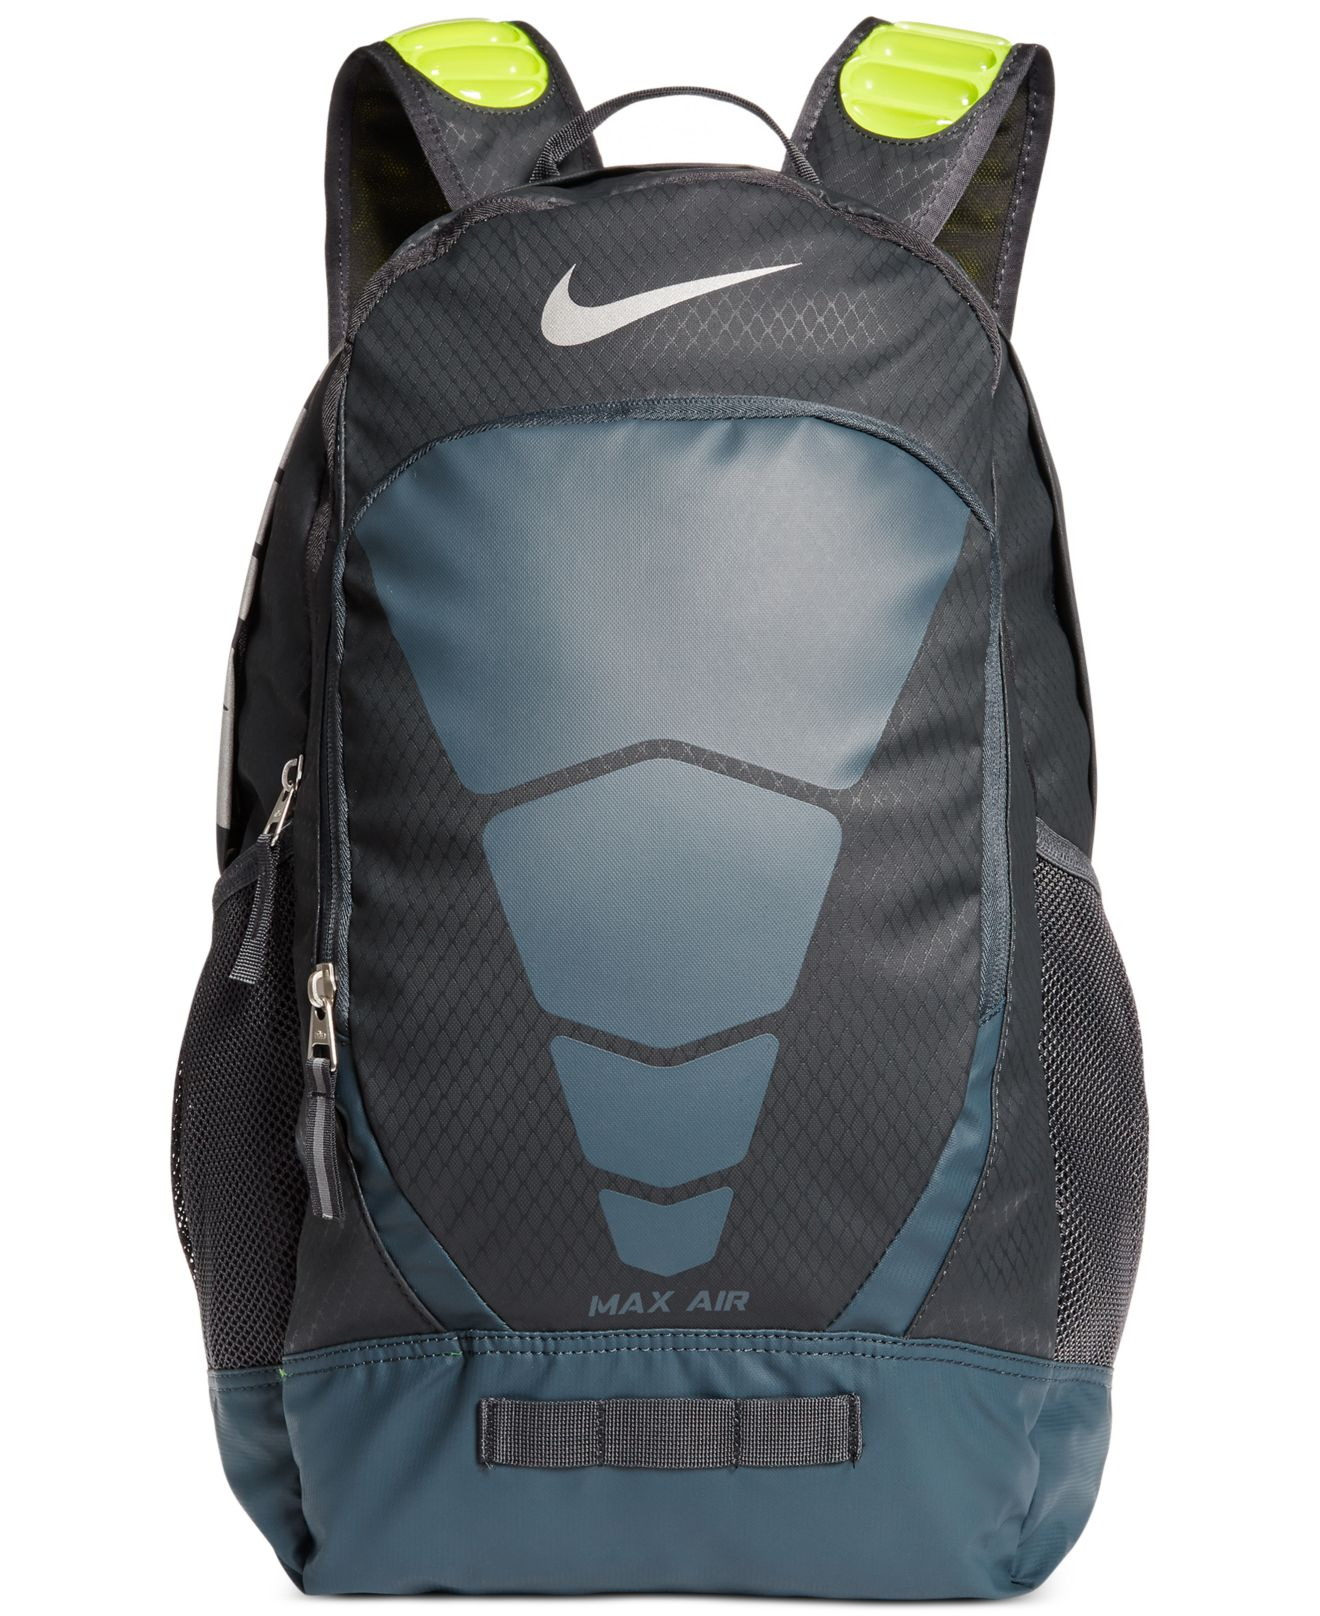 To acquire Backpack max air nike grey pictures trends